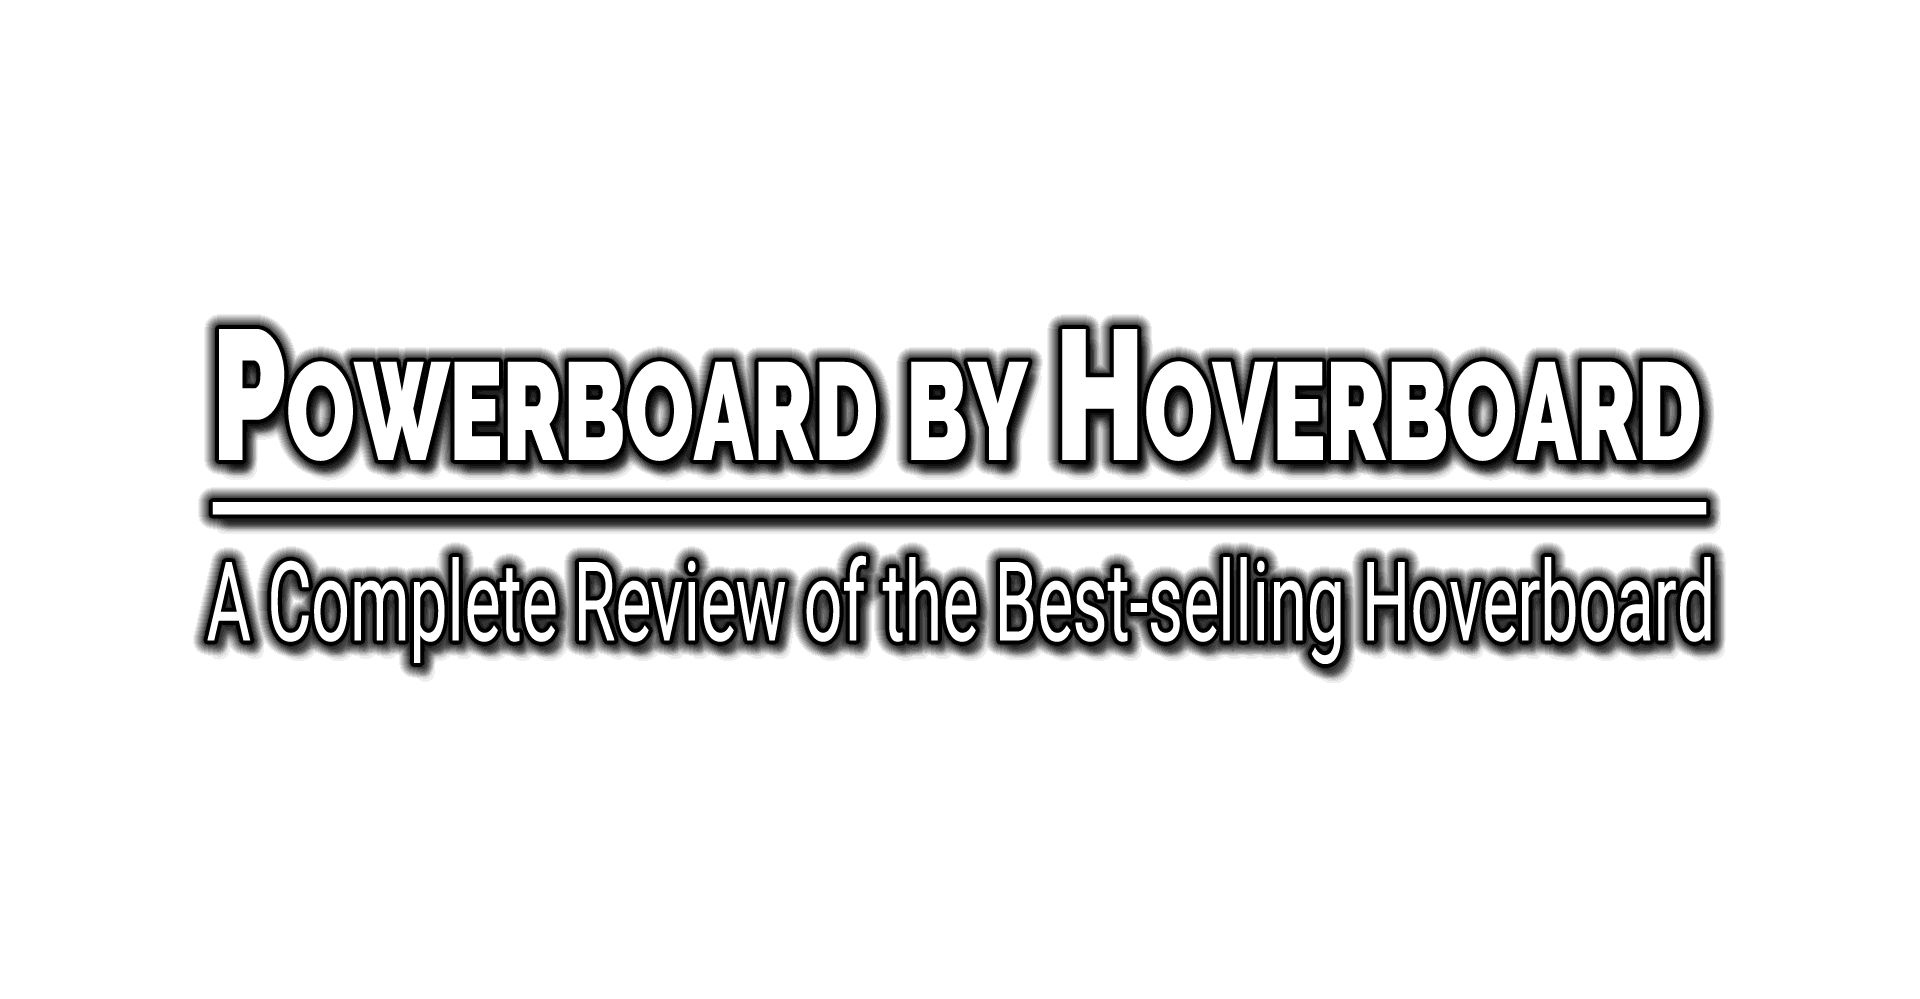 Powerboard By Hoverboard The Complete Review